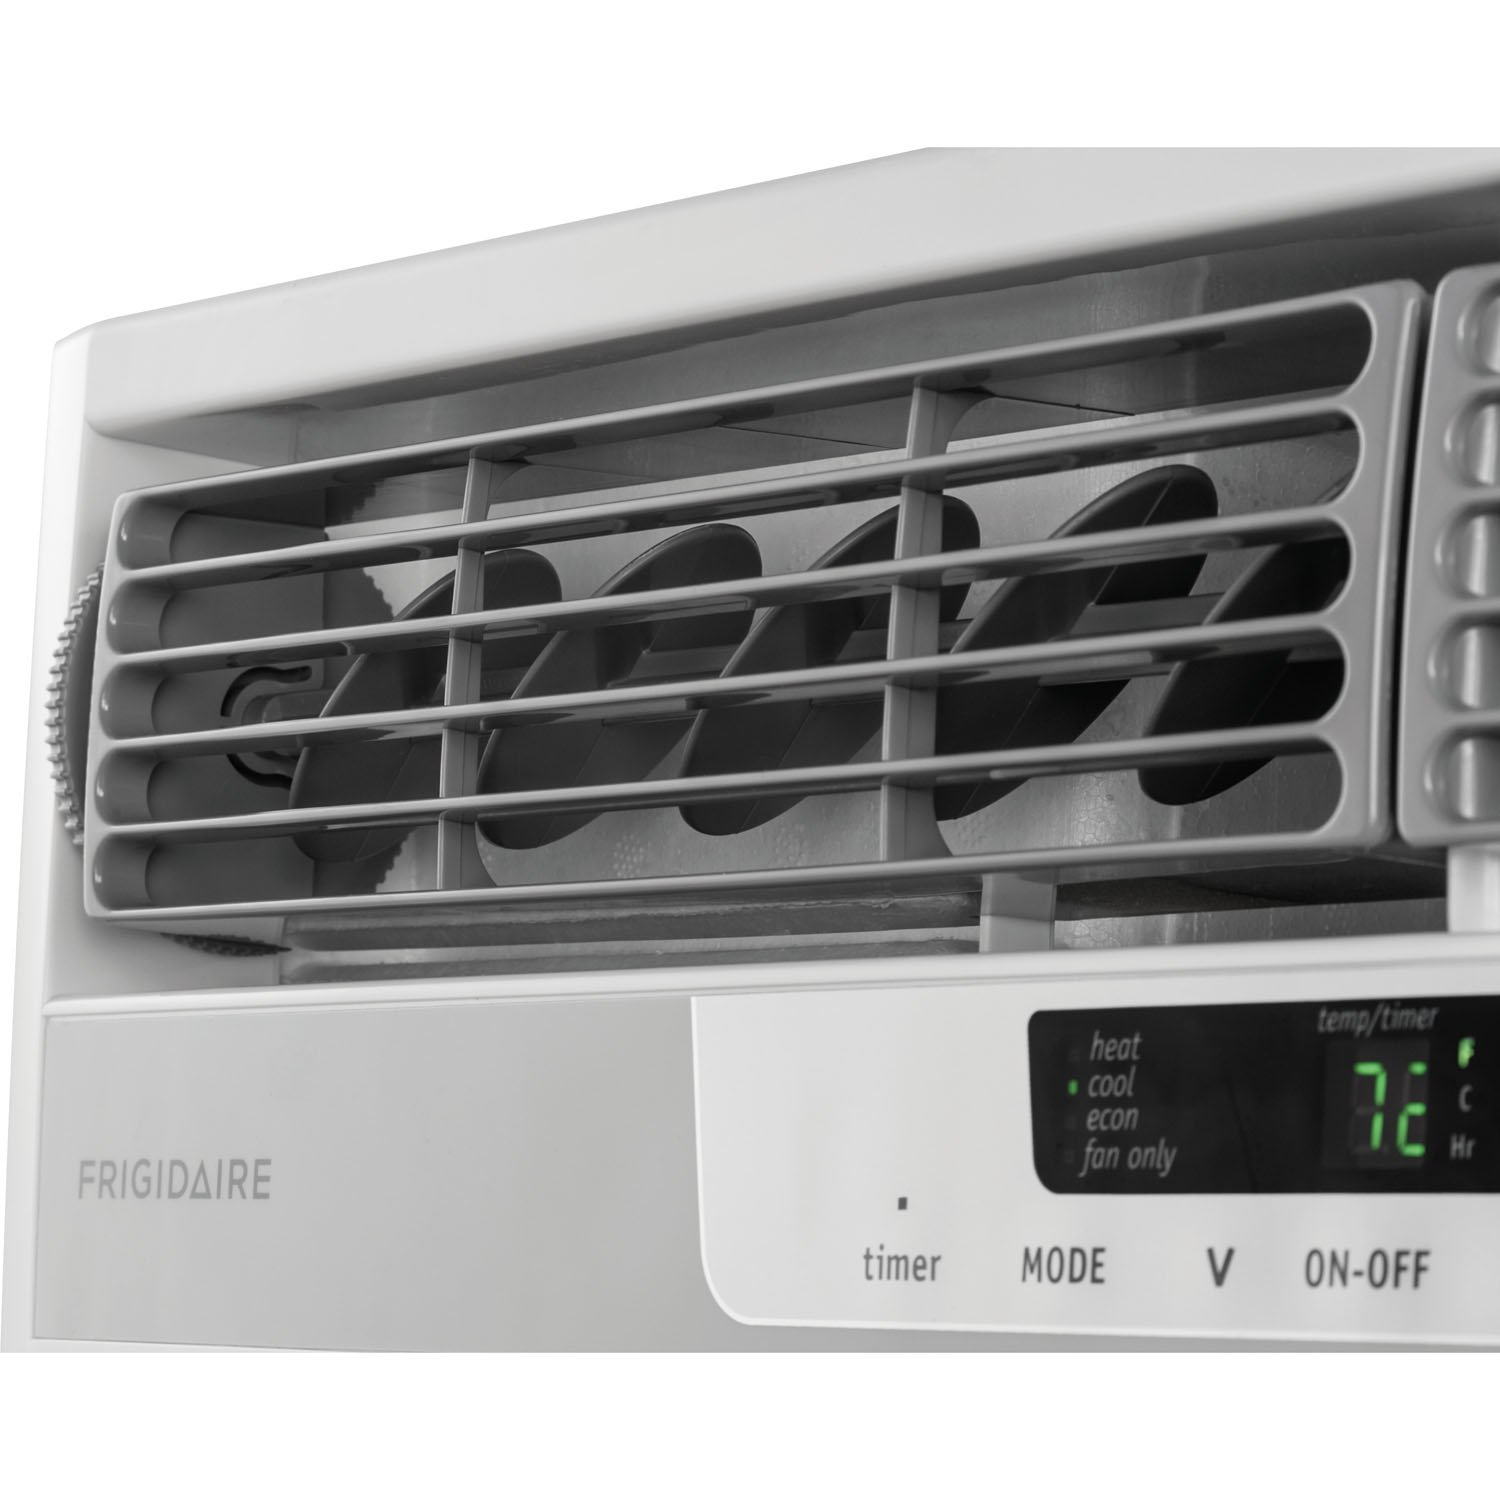 Frigidaire FFRH1222R2 12000 BTU 230-volt Compact Slide-Out Chassis Air Conditioner with 11000 BTU Supplemental Heat Capability by Frigidaire (Image #5)